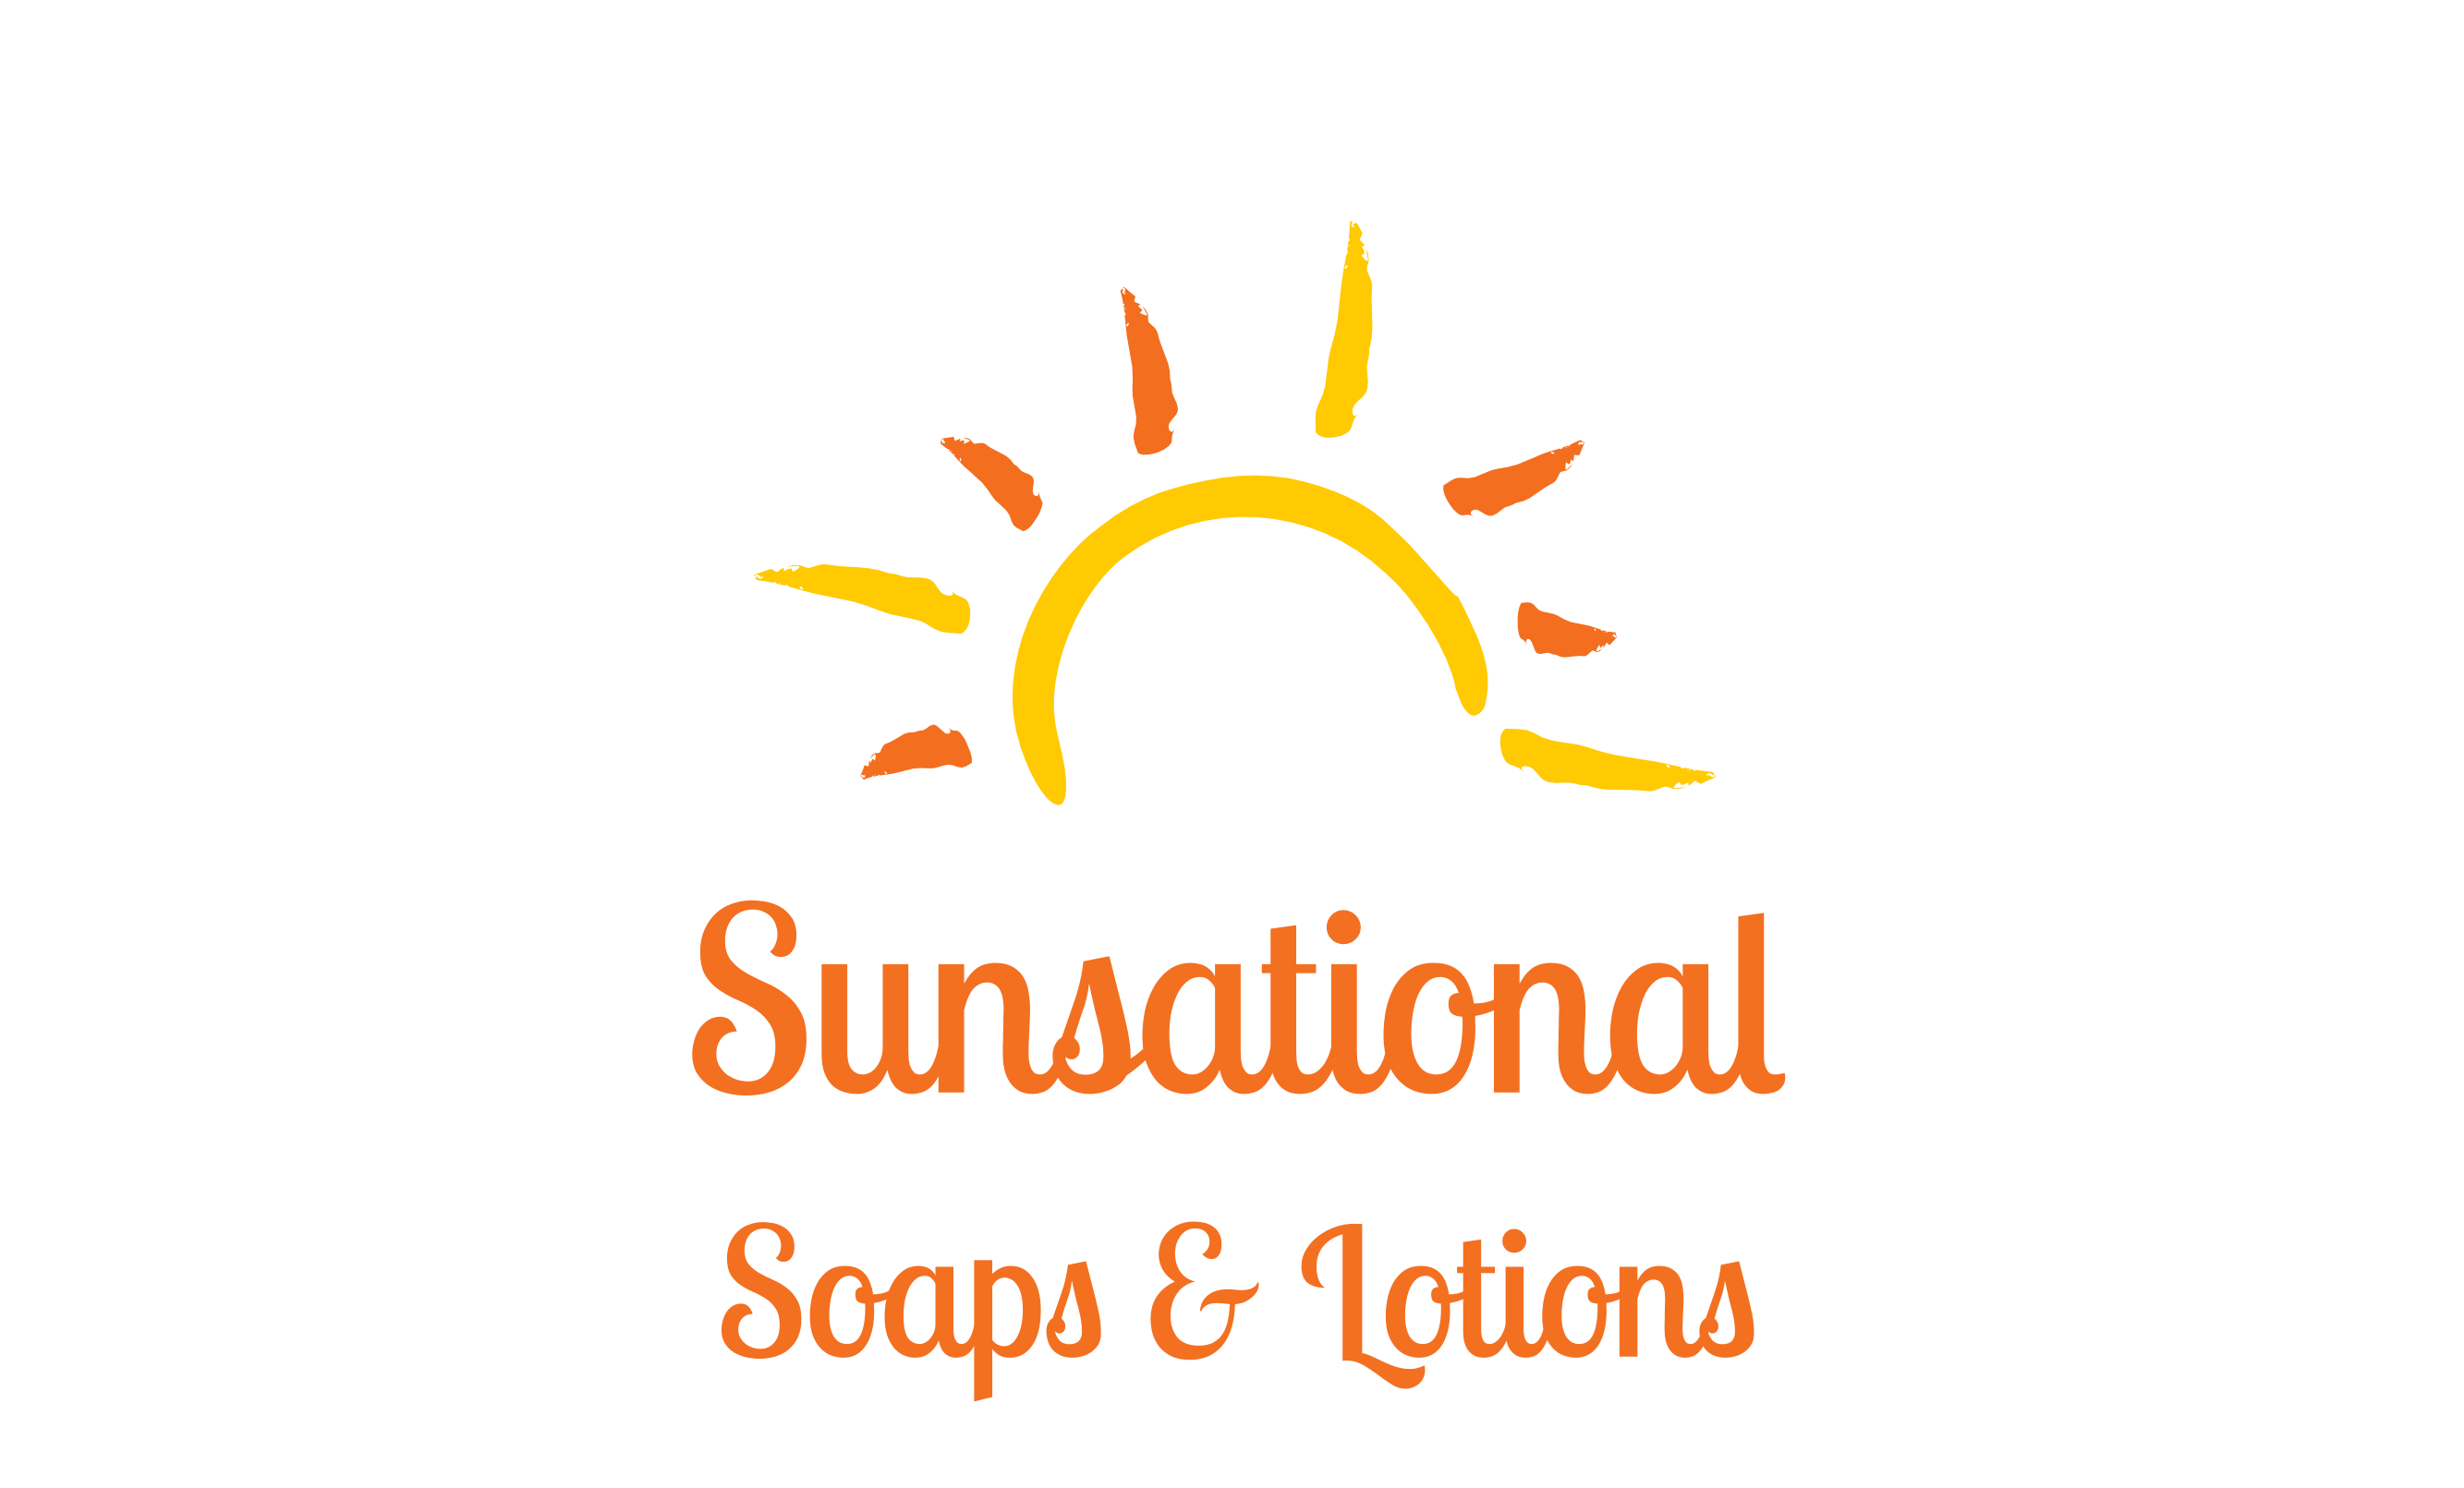 Sunsational Soaps & Lotions